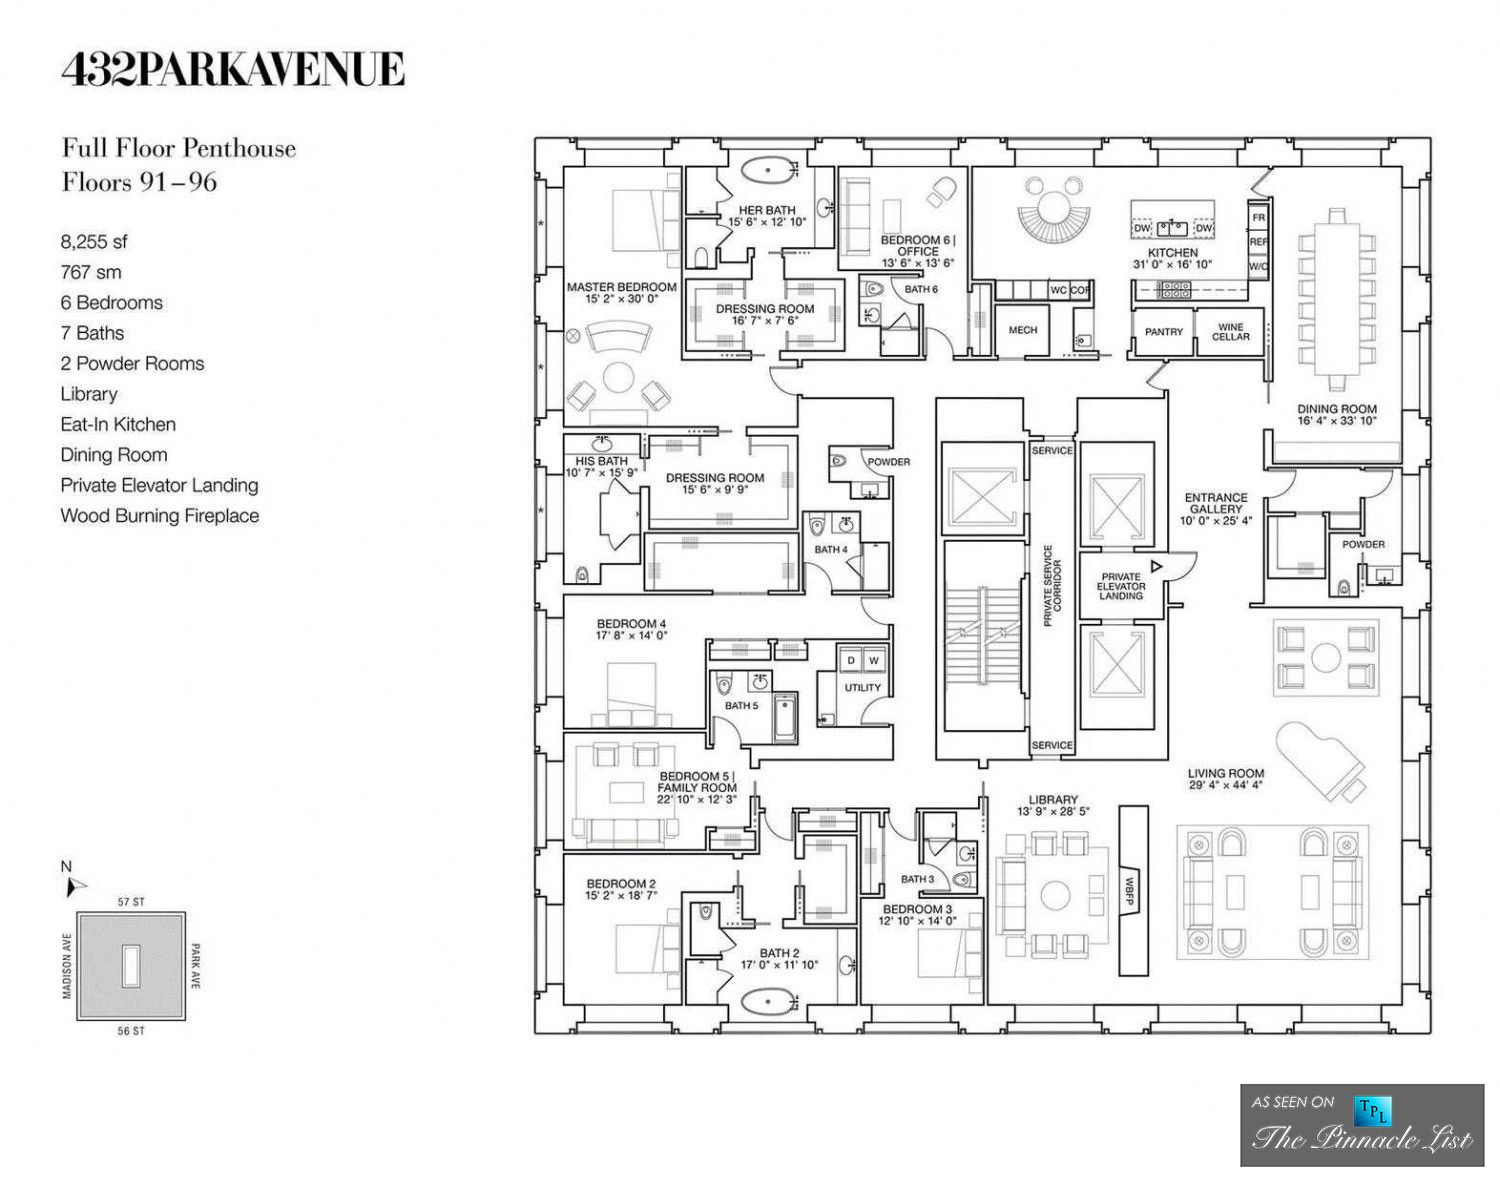 Luxury penthouse floor plan ph92 432 park avenue new for Design my floor plan